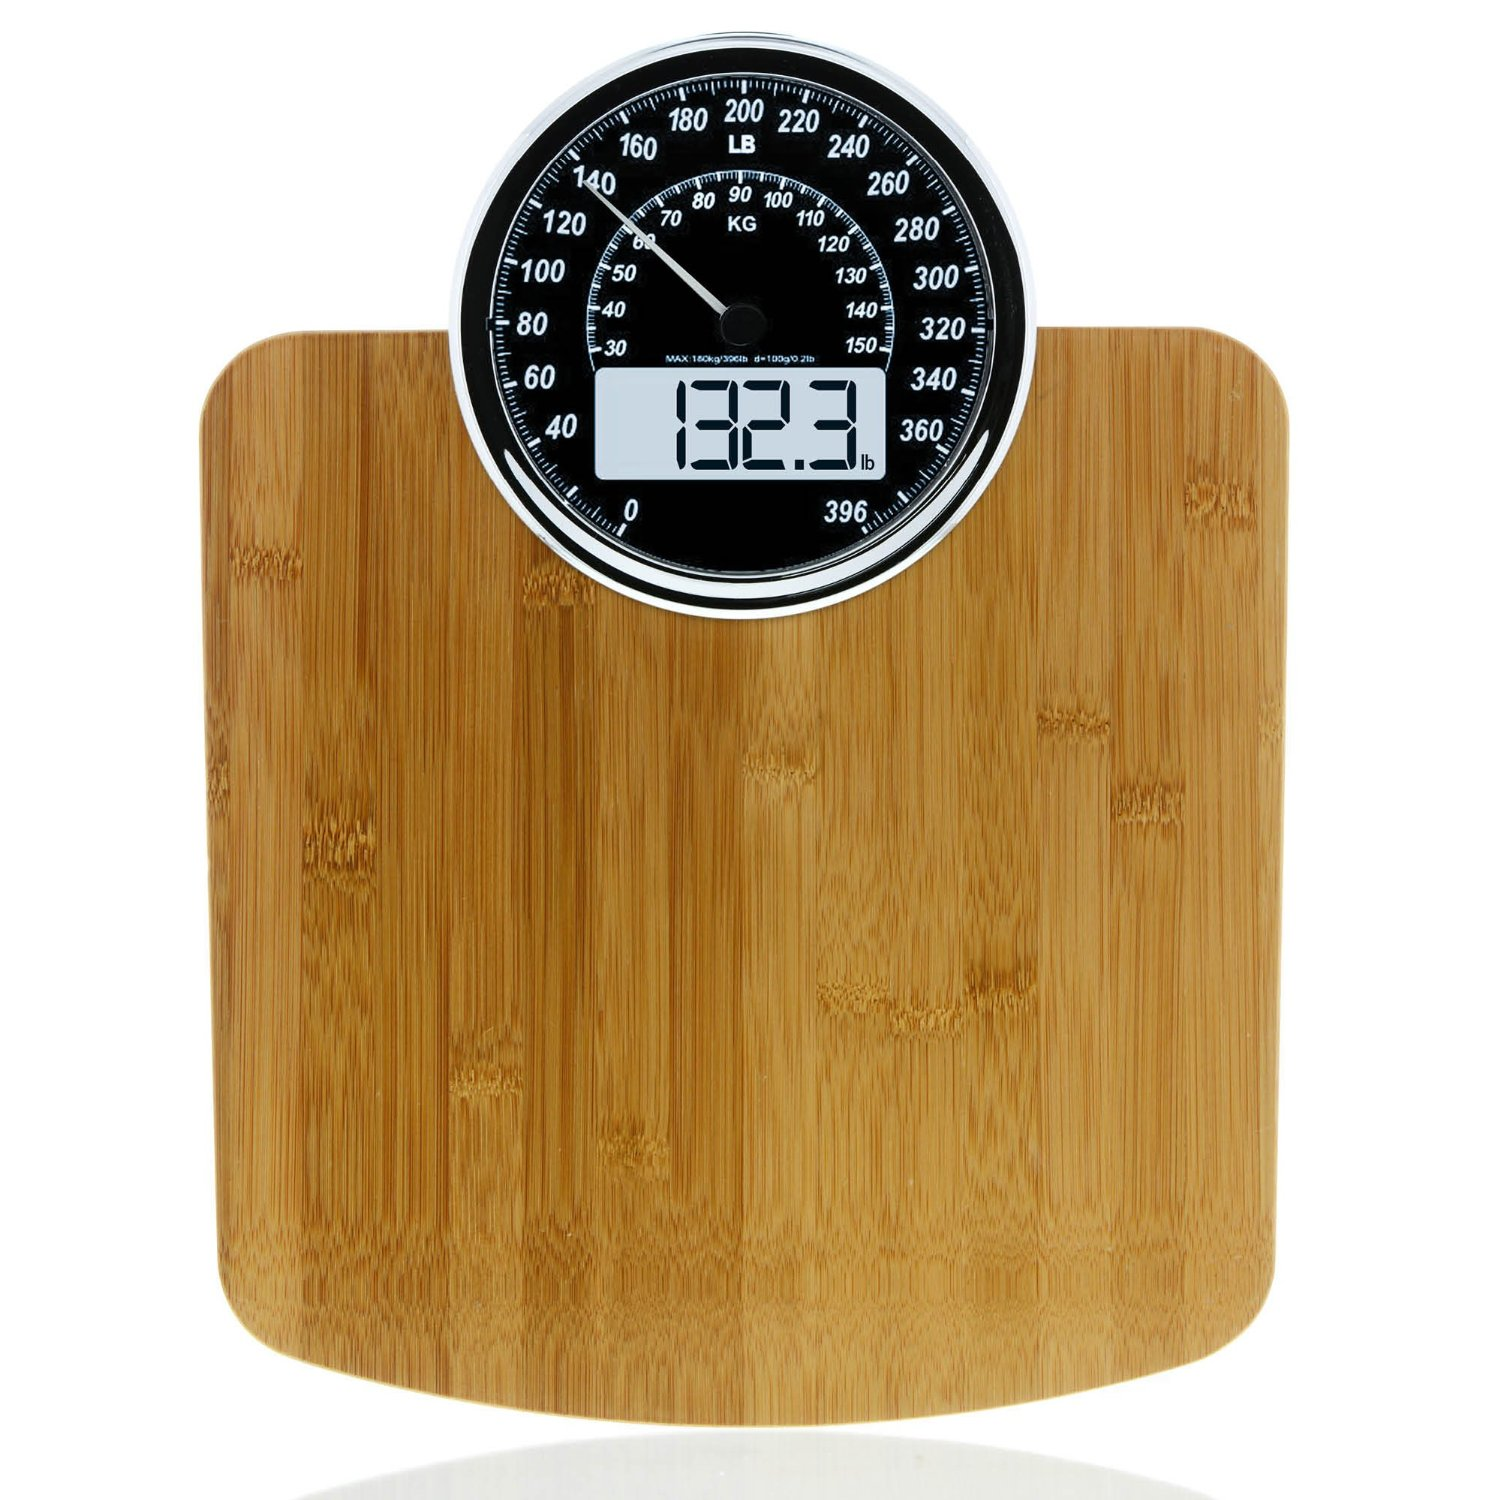 My Life My Shop Balance2 Digital & Analog Body Scale